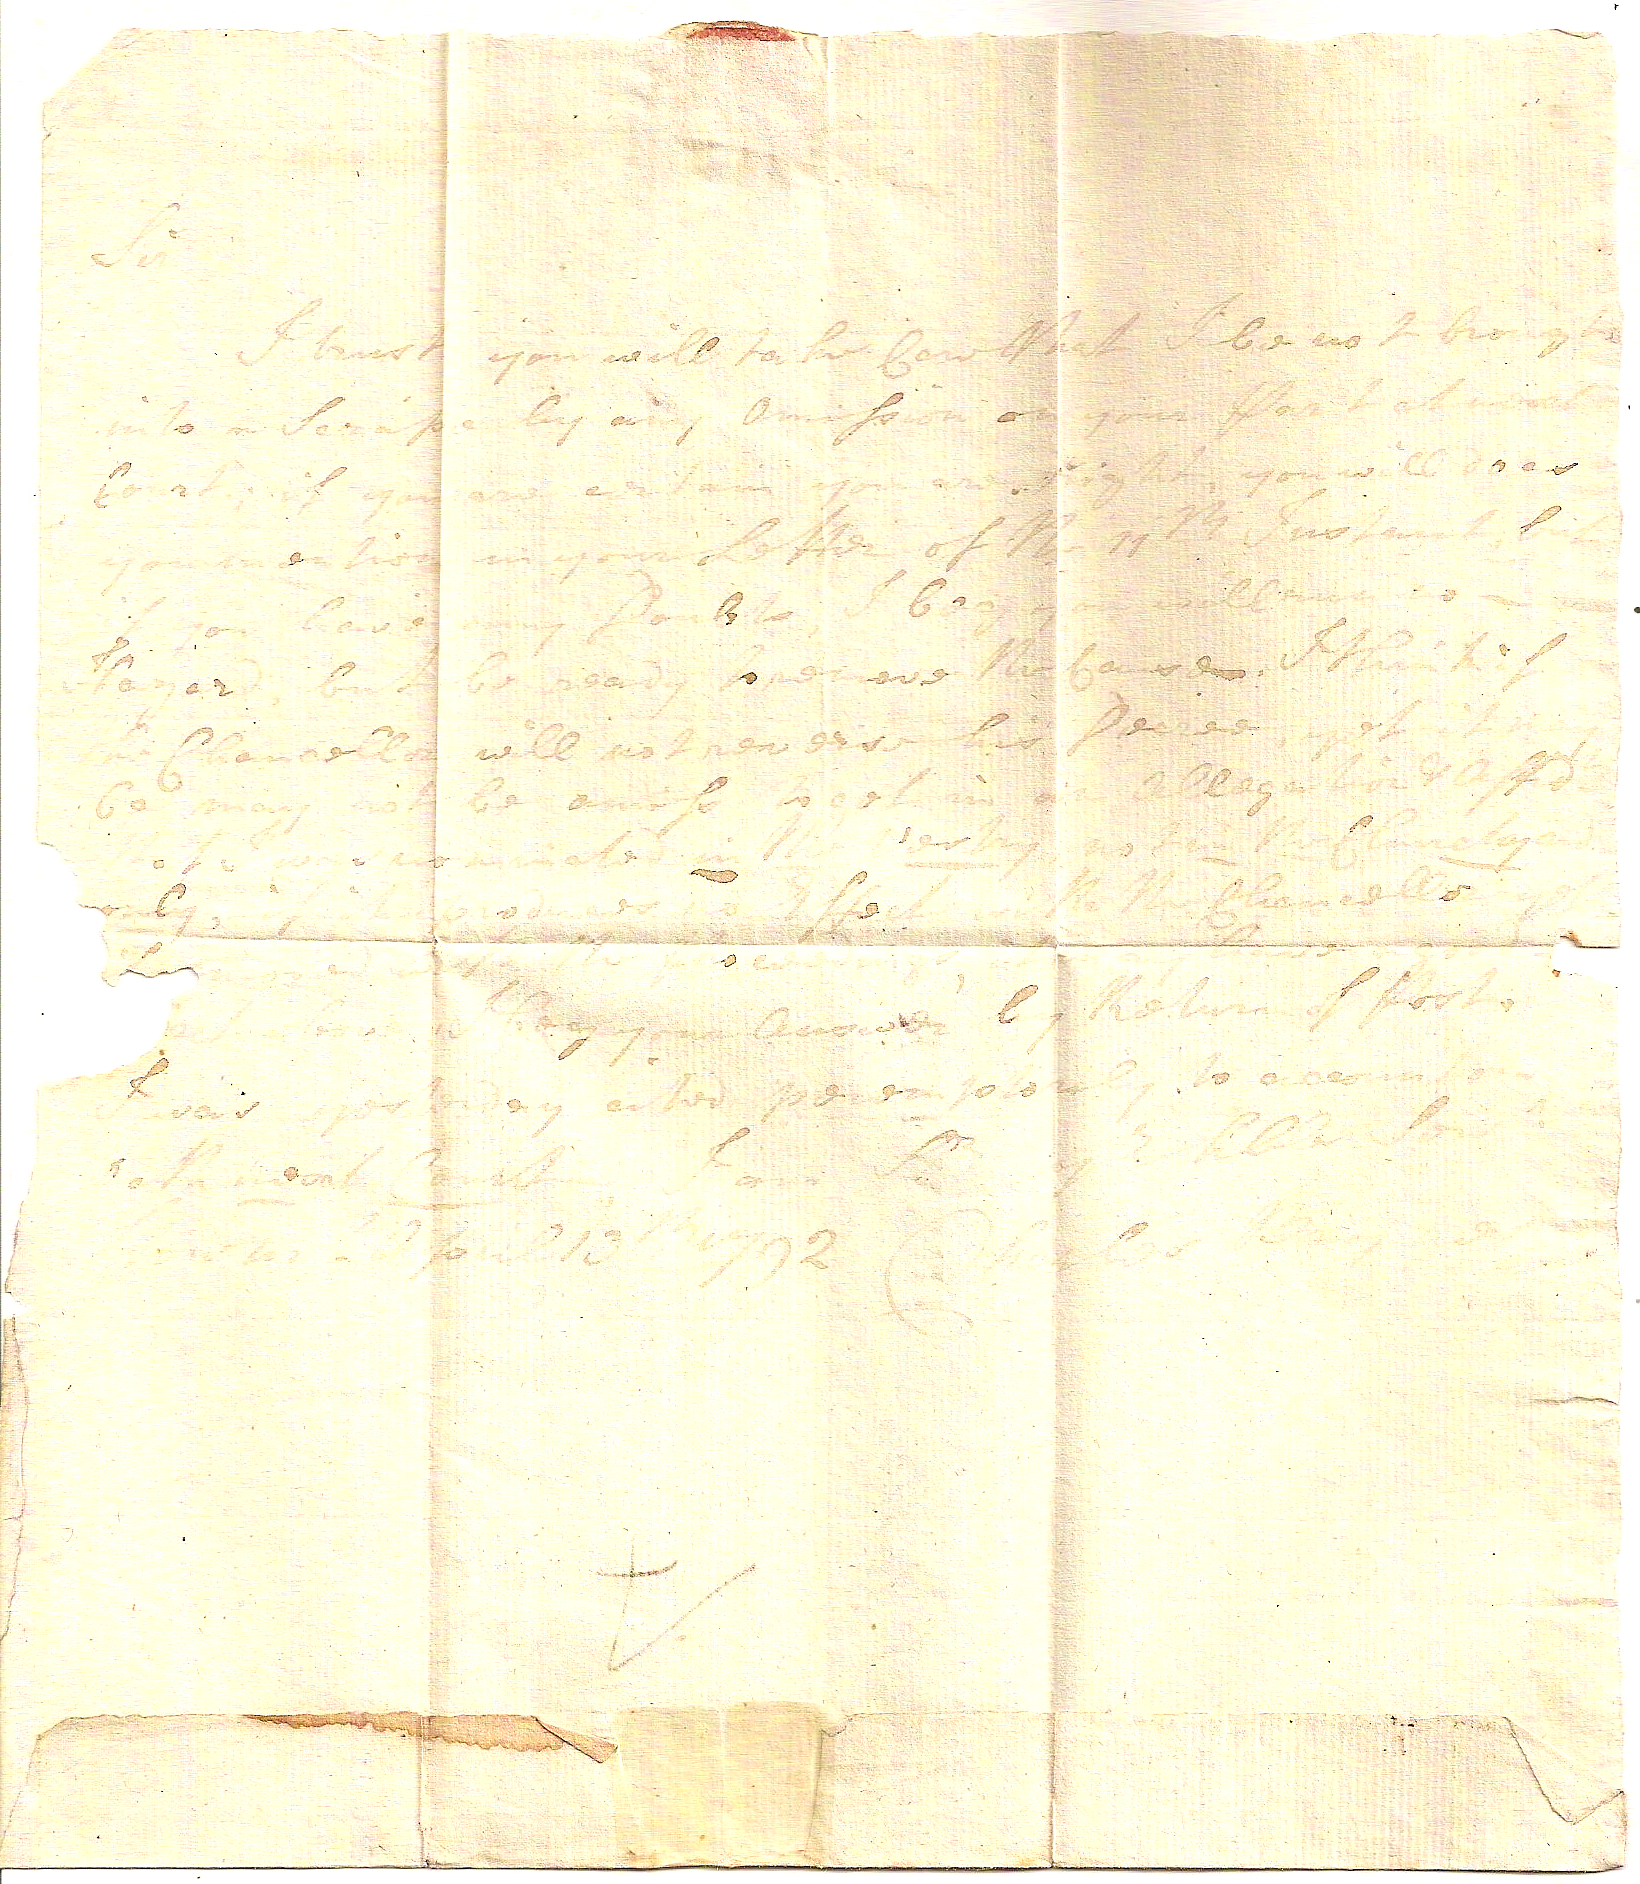 suffolk, pre-stamp, legal, letter